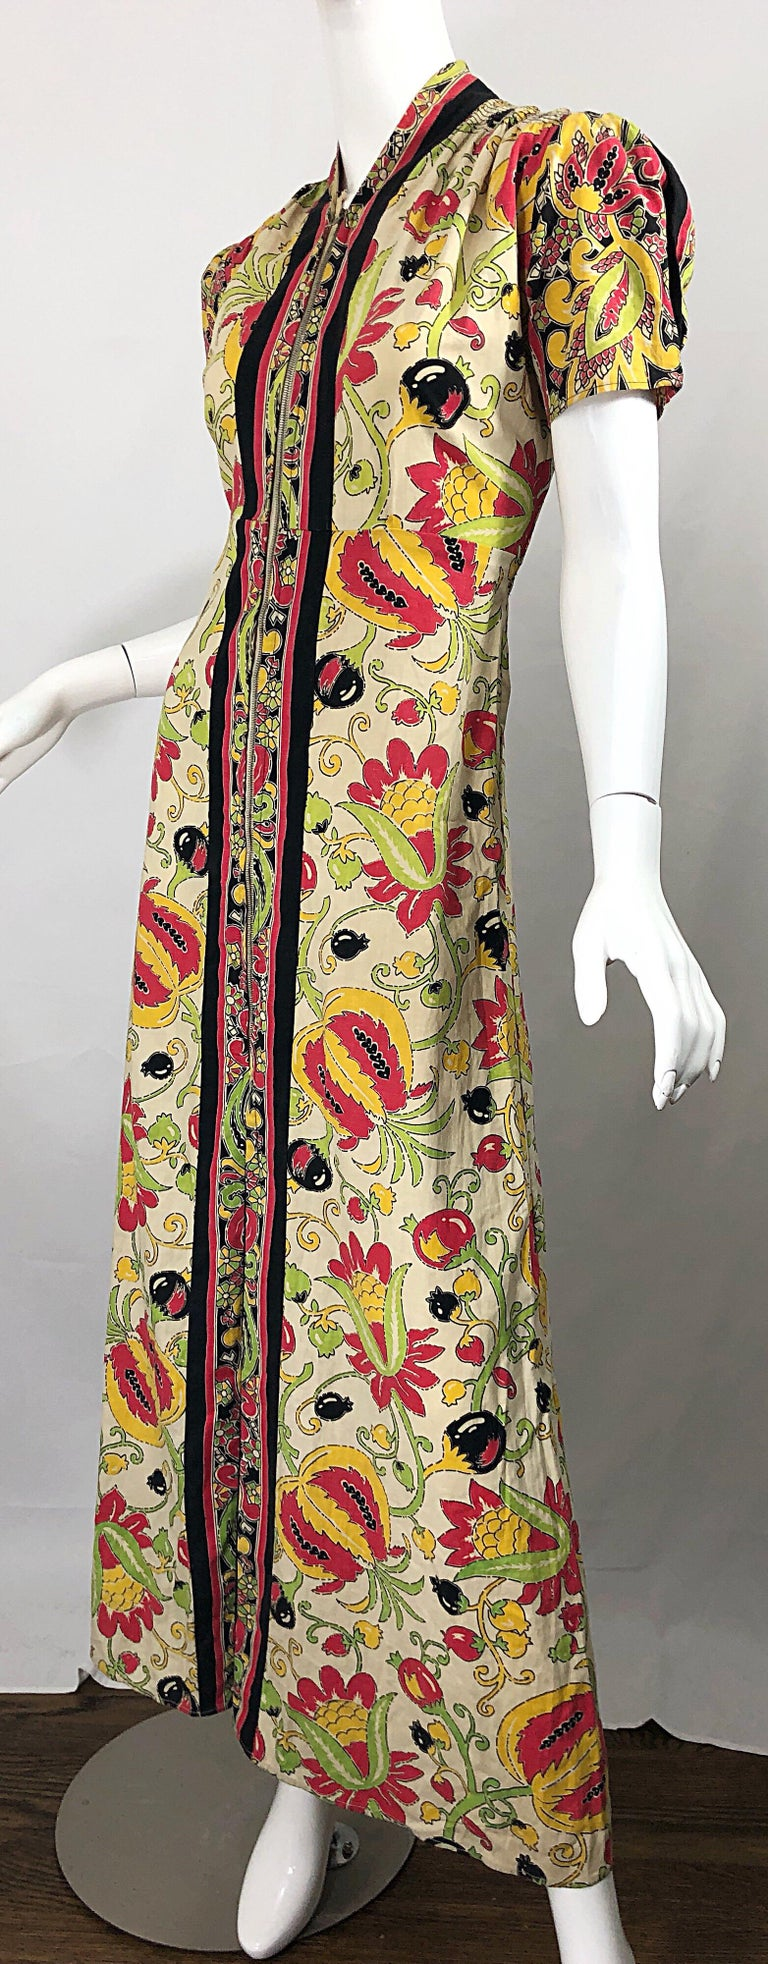 Amazing 1940s Botanical Asian Inspired Paisley Cotton + Linen 40s Maxi Dress For Sale 6